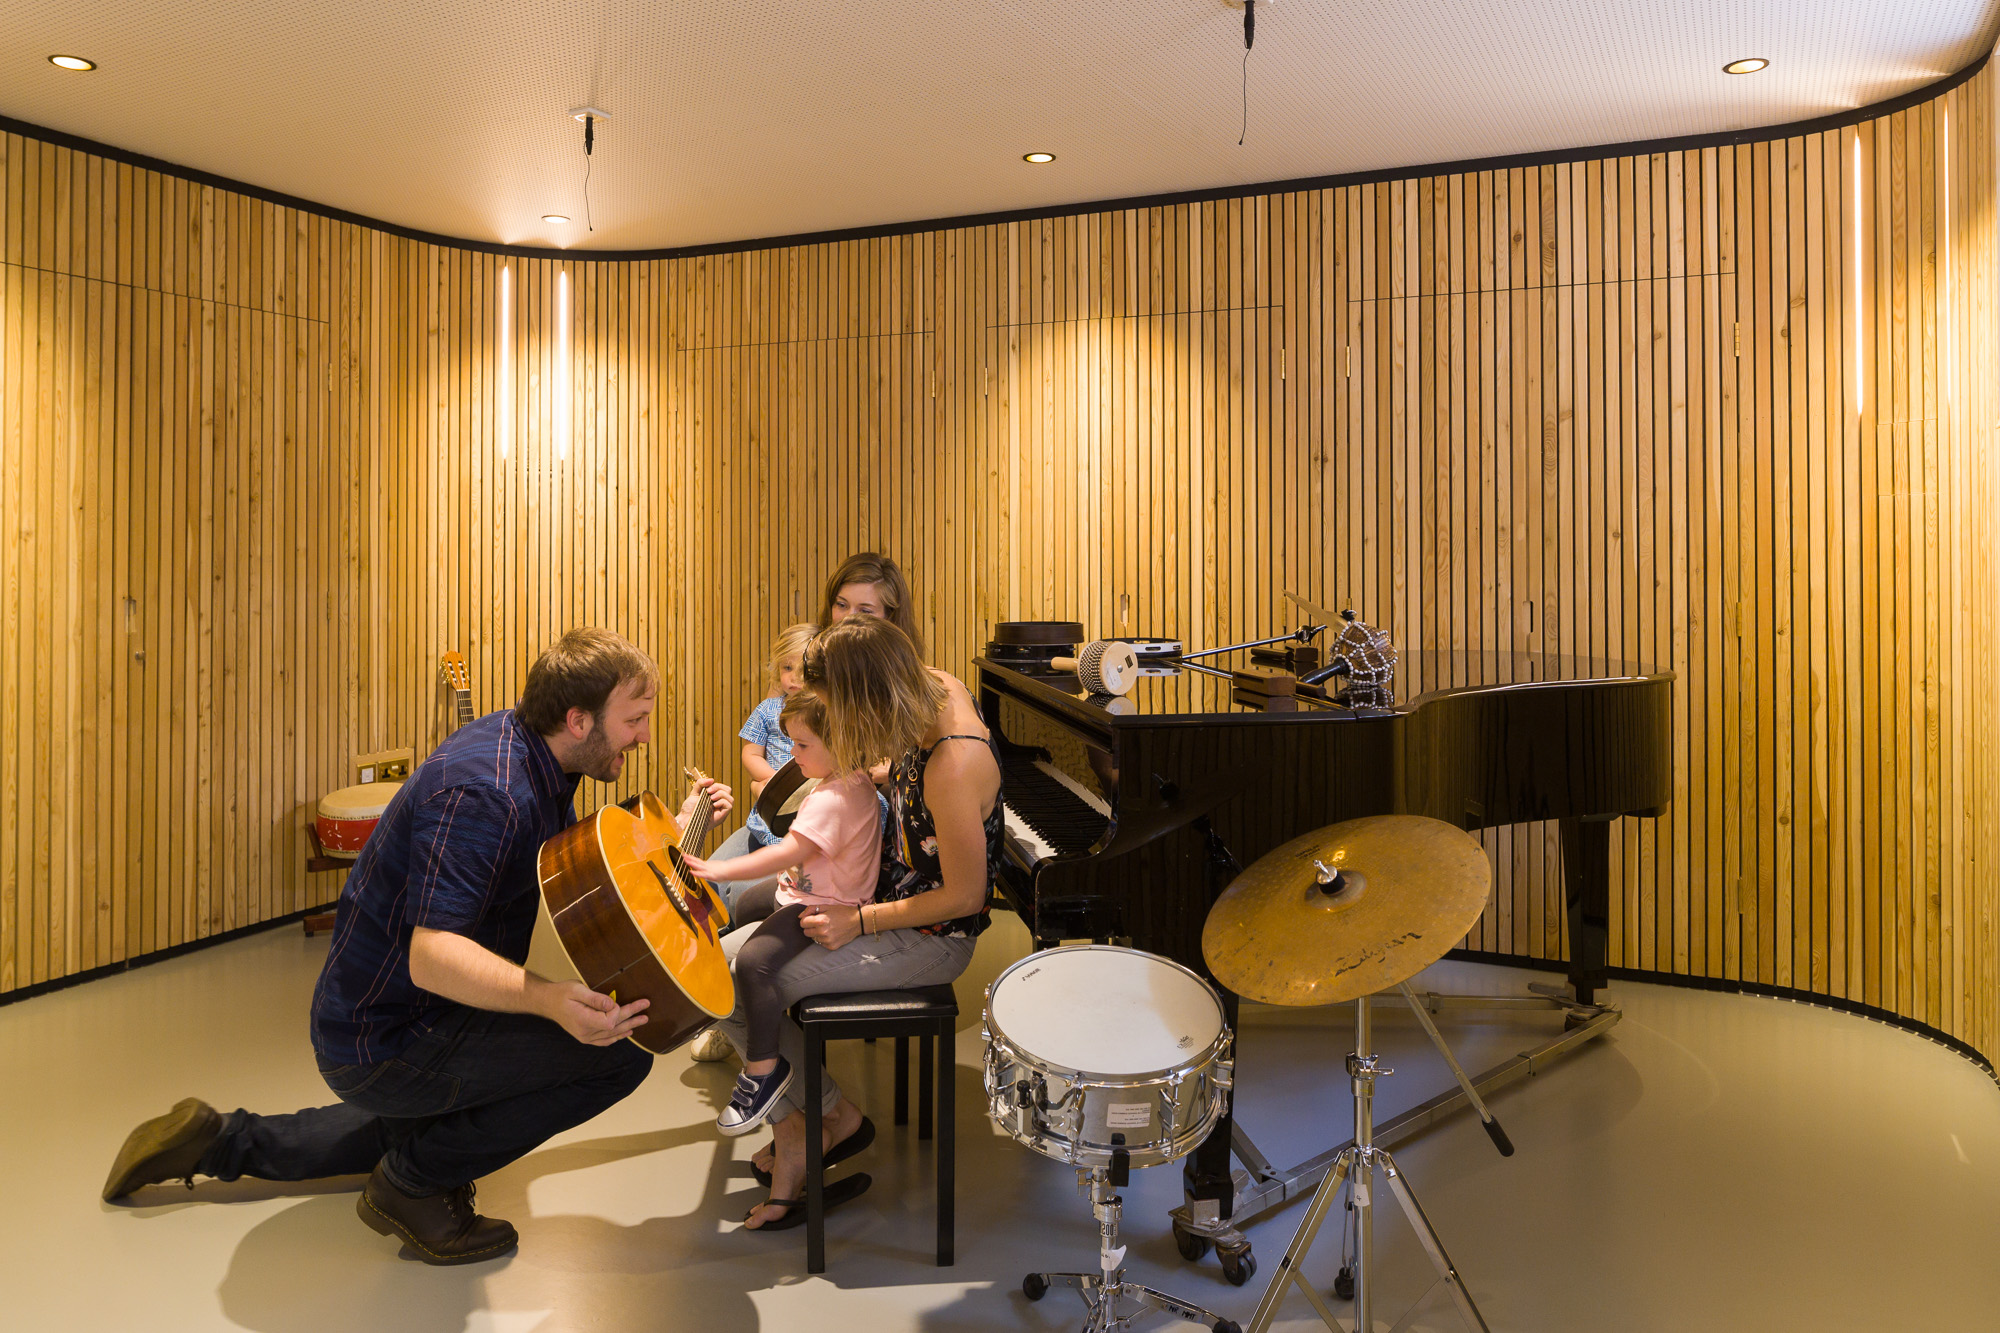 Children playing instruments in the music therapy room refurbished with walls layered with timber battens.